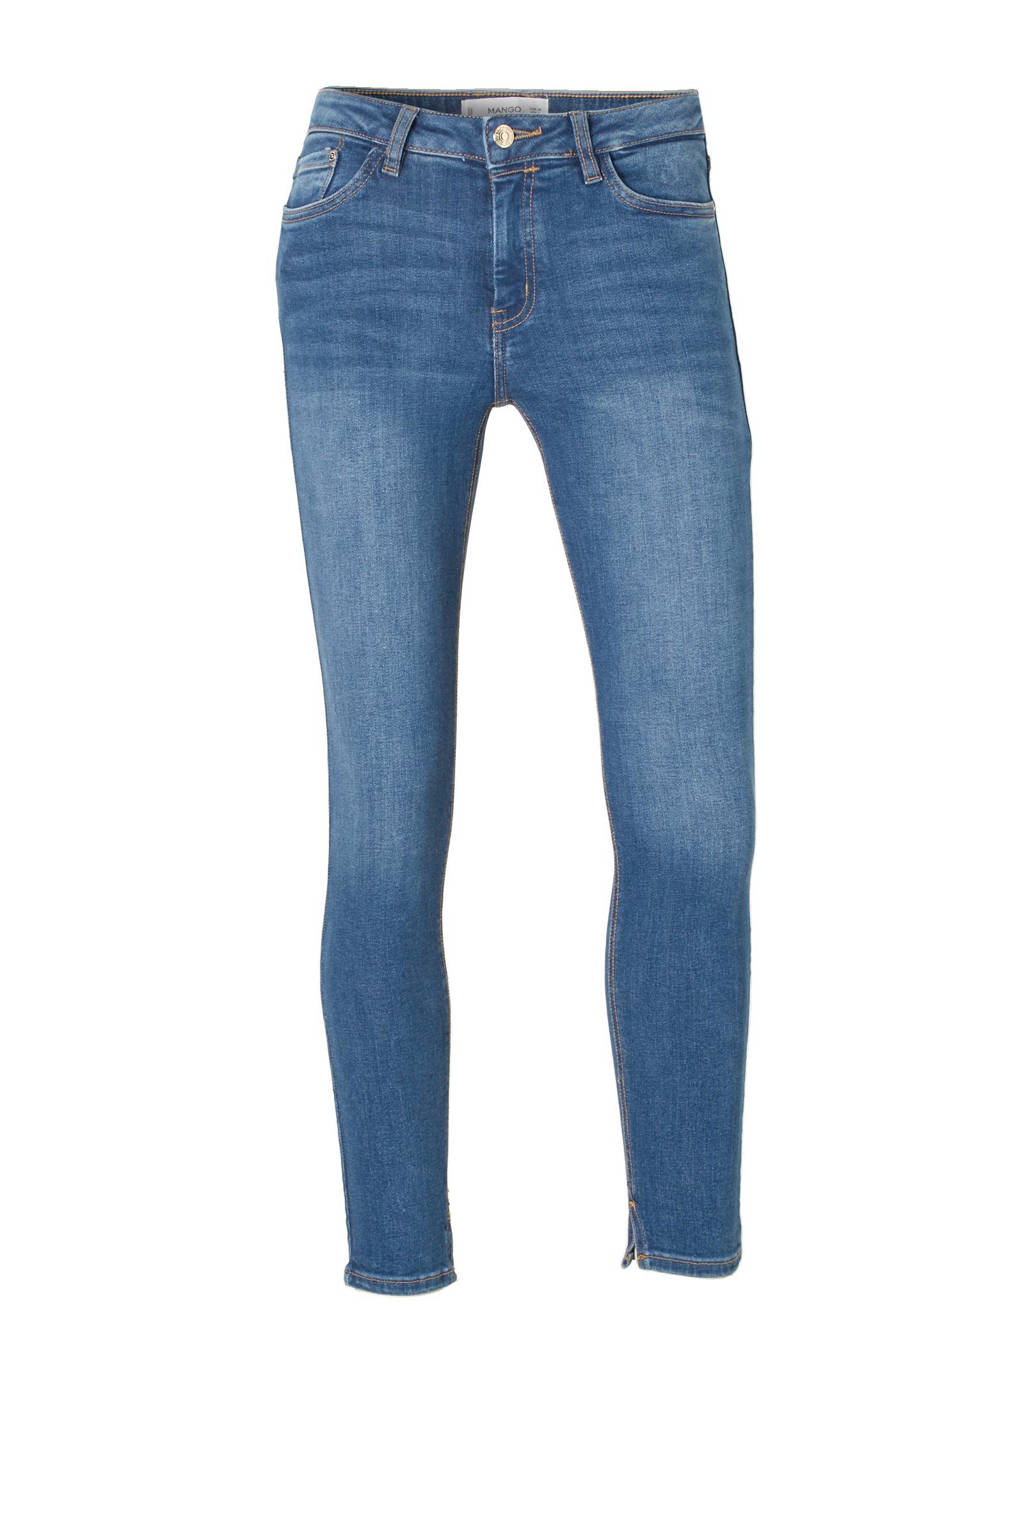 Mango cropped skinny fit jeans, Stonewashed